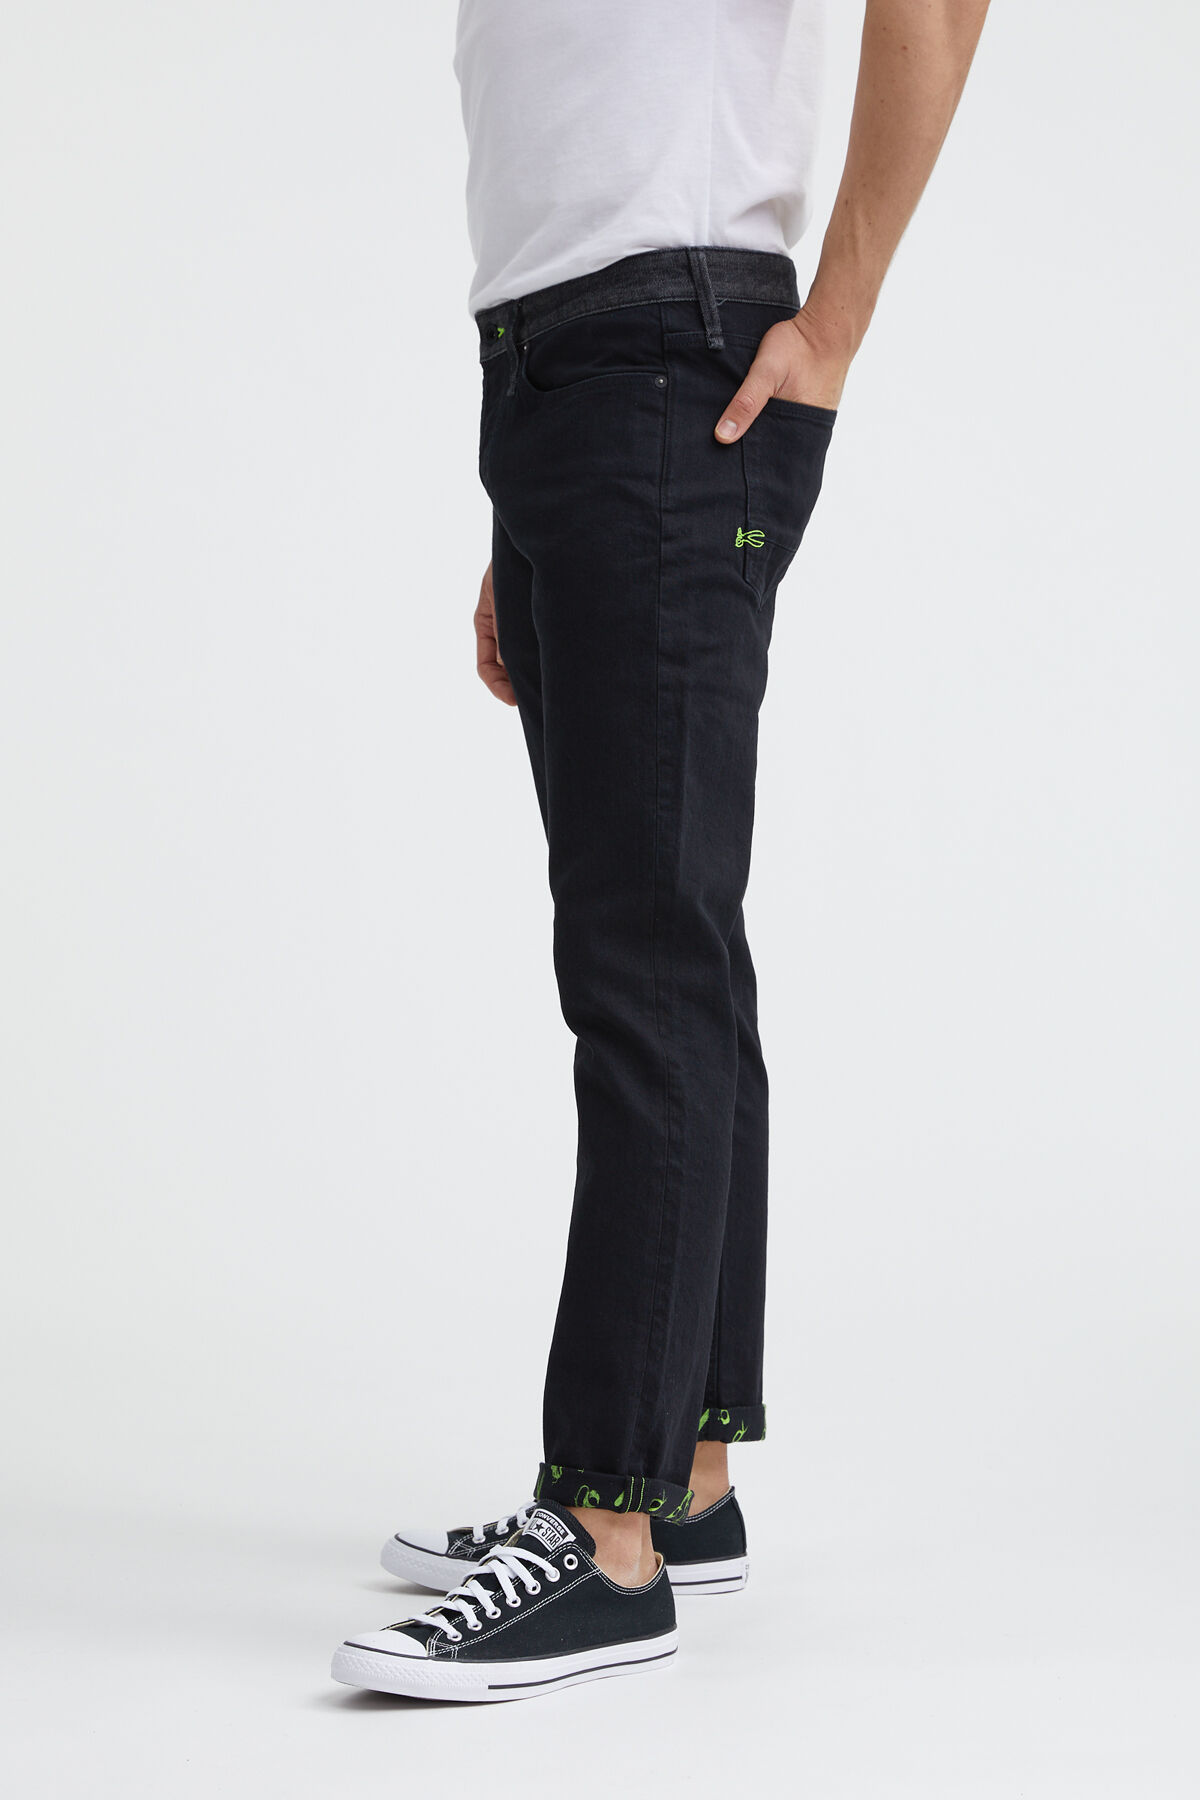 RAZOR 95MIX Black sustainable denim - Slim Fit